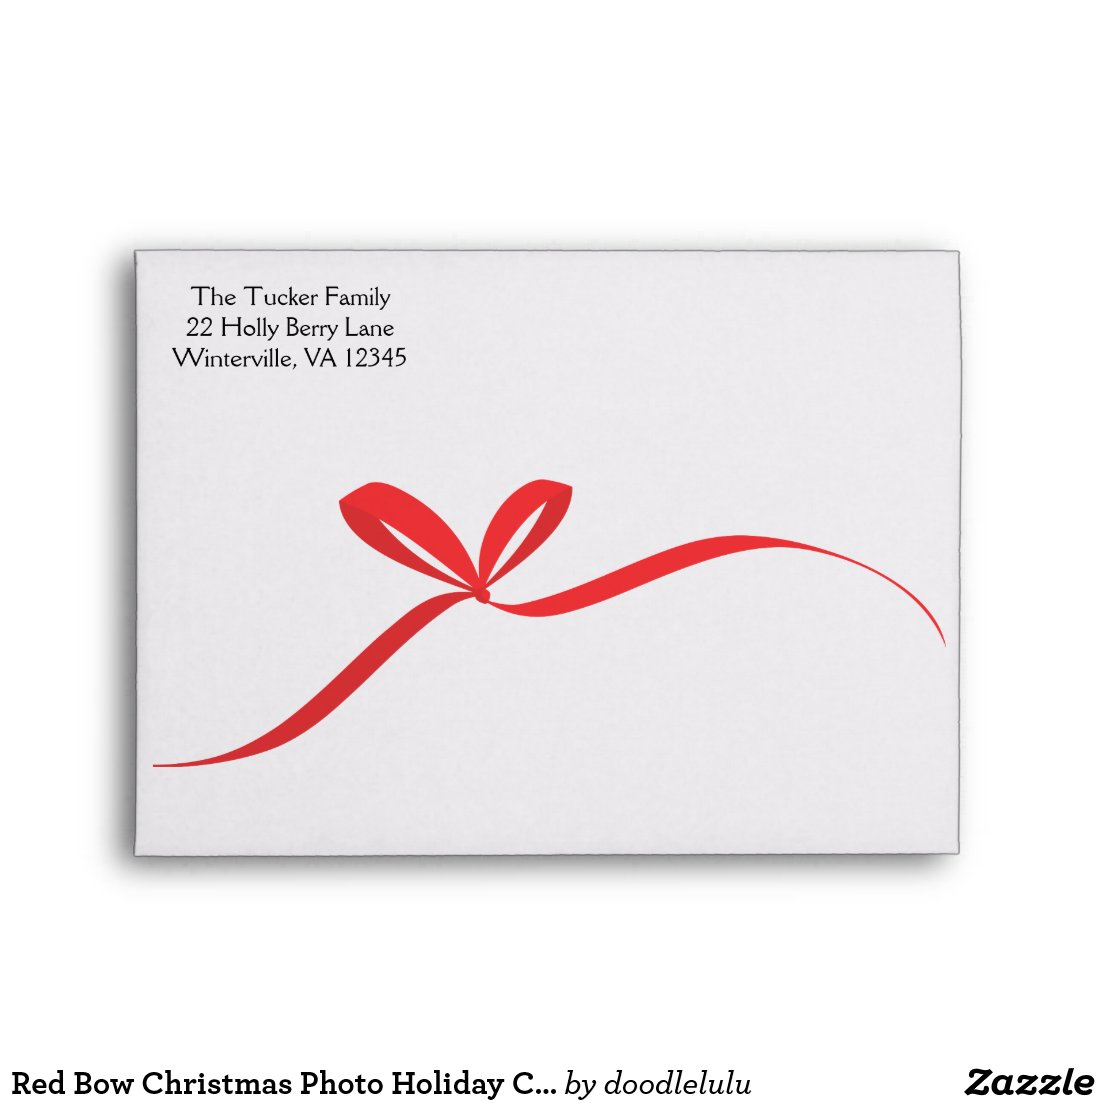 Red Bow Christmas Photo Holiday Card Envelope